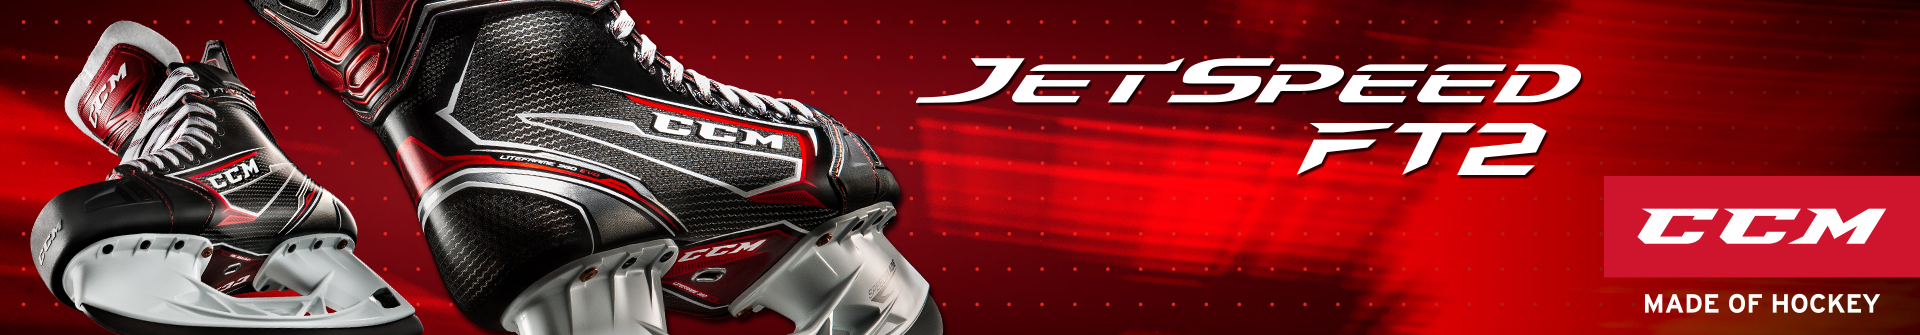 Shop The New CCM JetSpeed FT2 Hockey Skates Available For Sale Today Online & In Store At Your Local Source For Sports Near You.